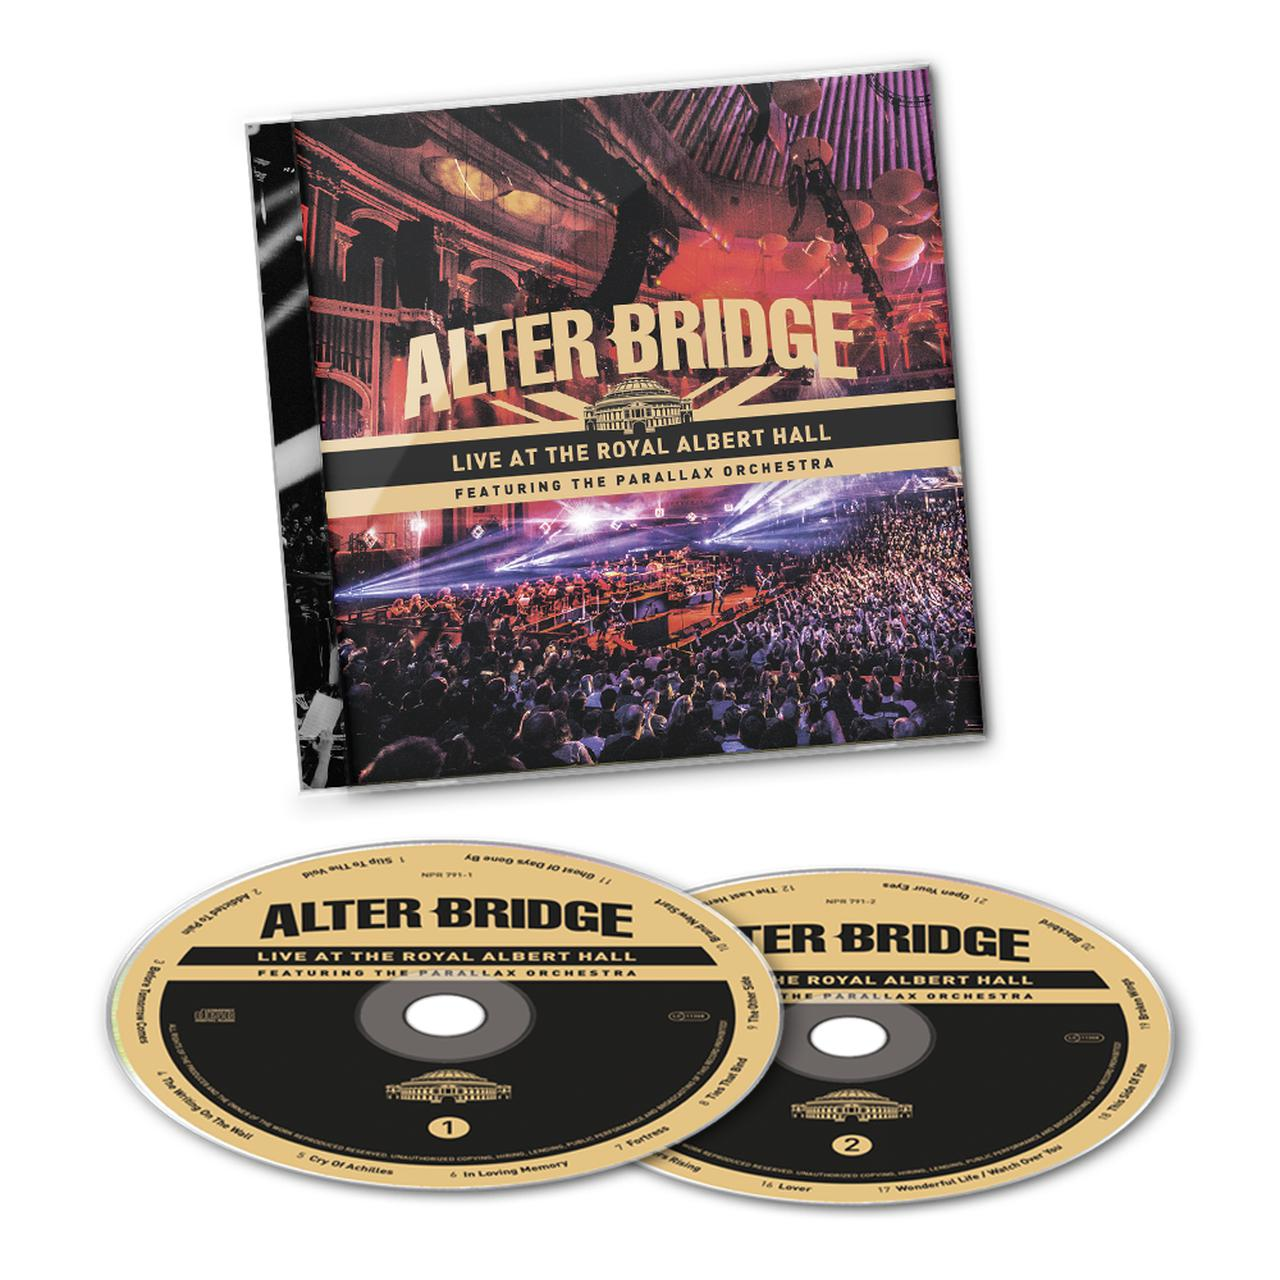 Alter Bridge Live At The Royal Albert Hall Featuring The